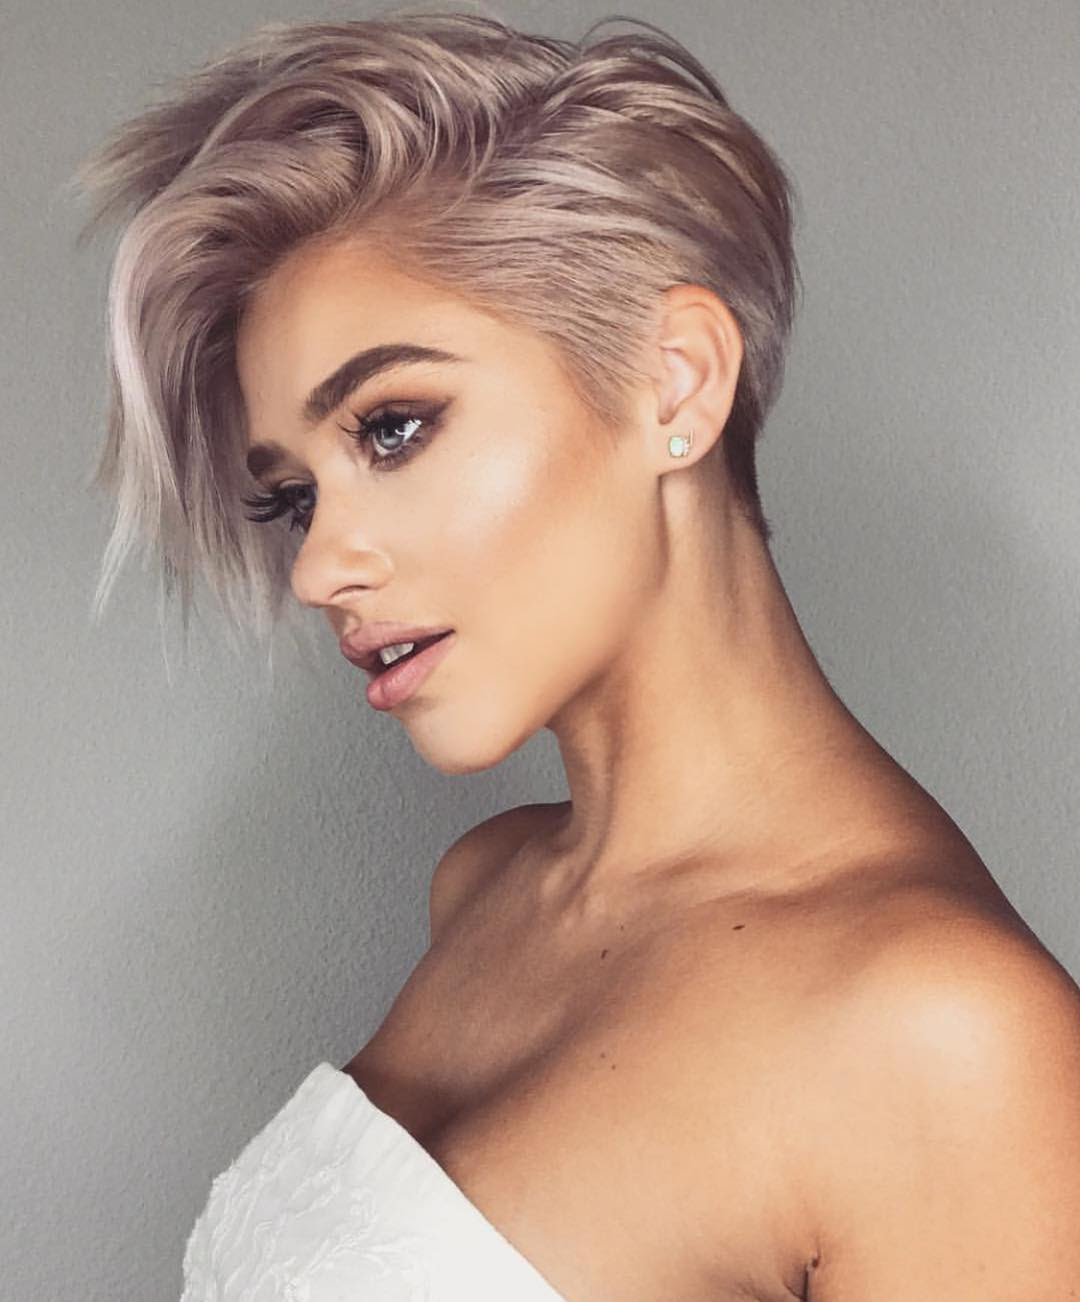 10 Trendy Very Short iHaircutsi for Female Cool Short Hair